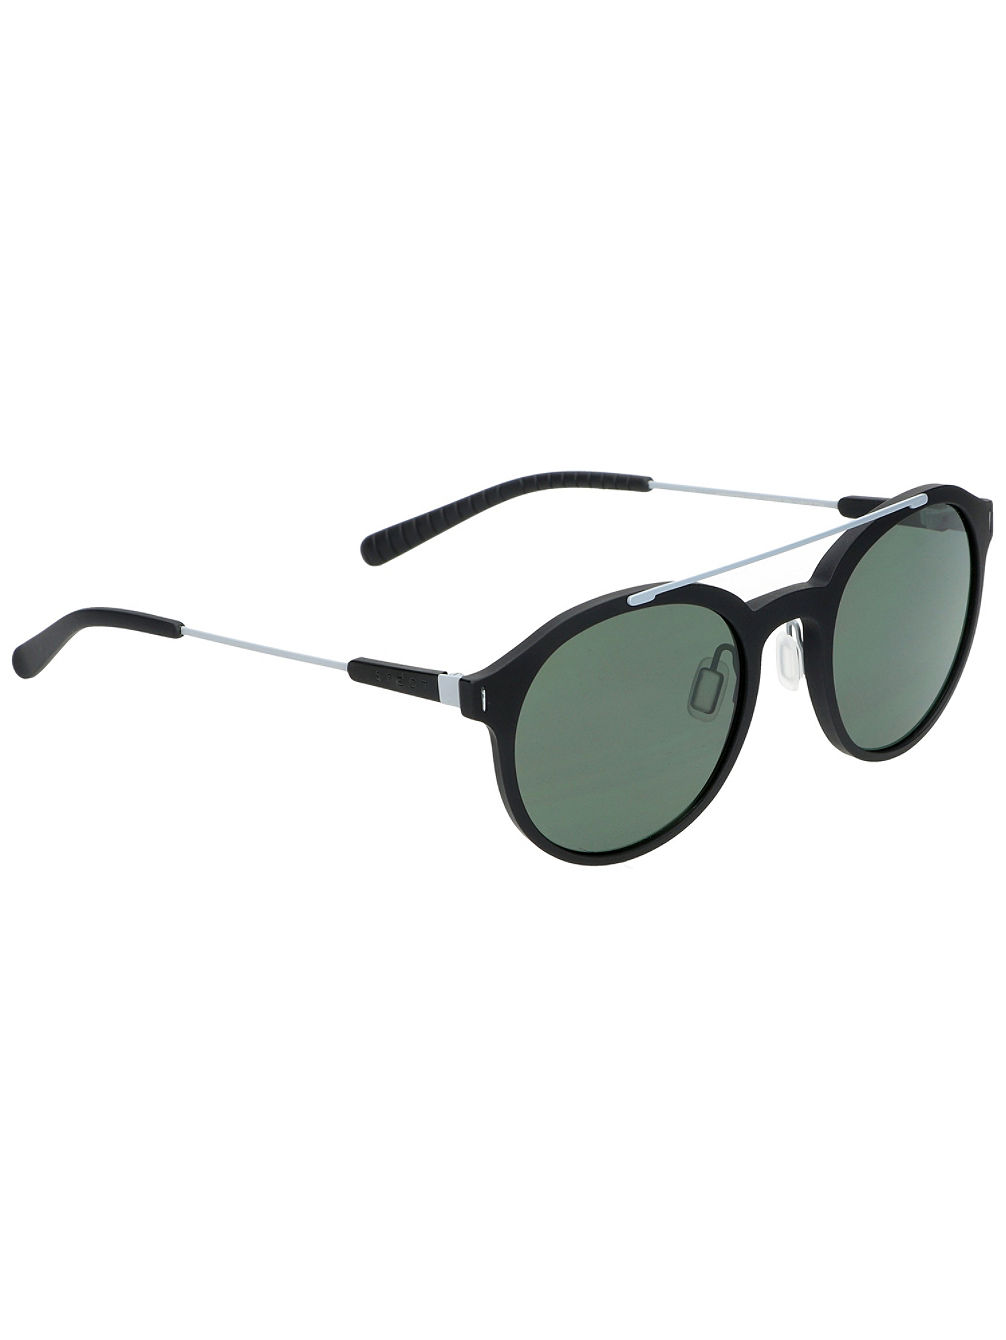 Shadwell Black Sonnenbrille